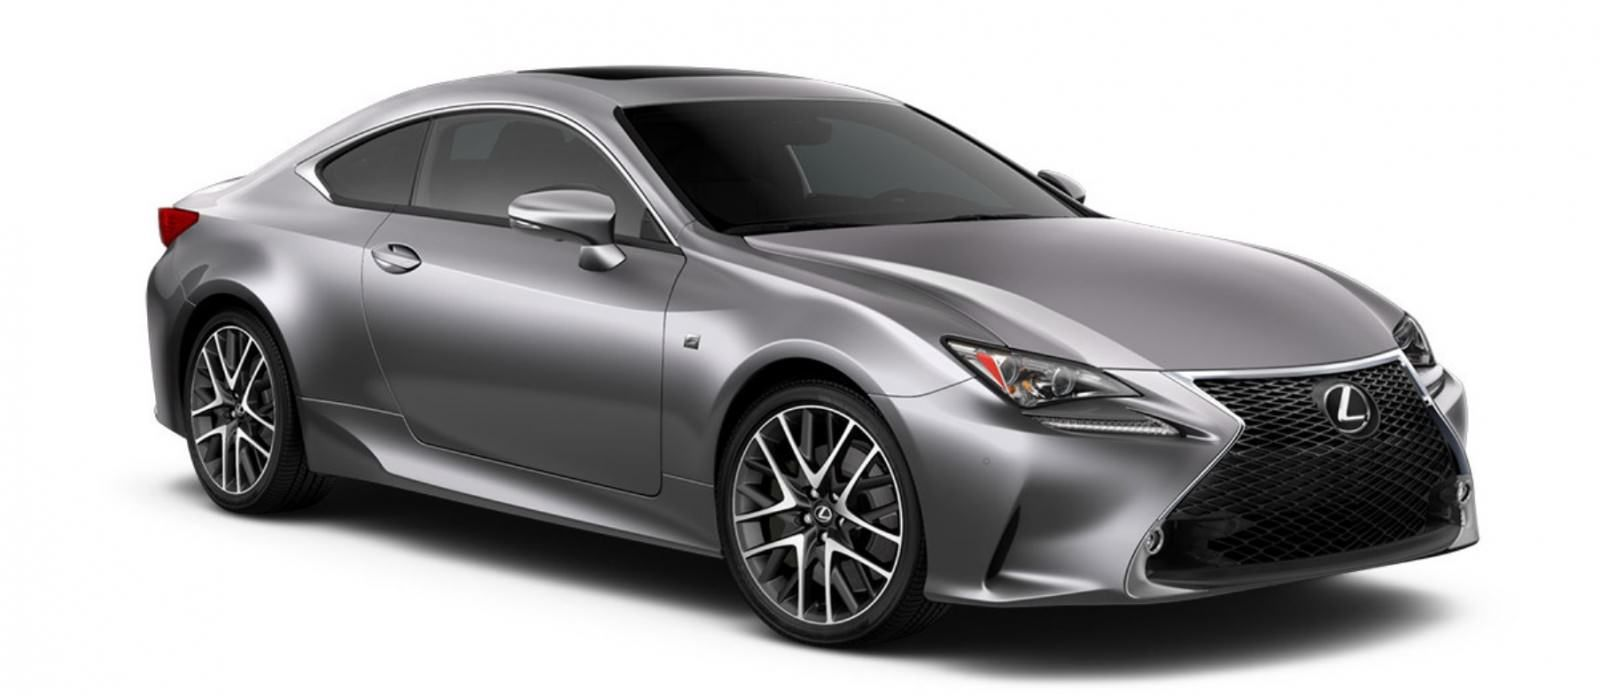 Updated with Interiors 2015 Lexus RC350 Colors